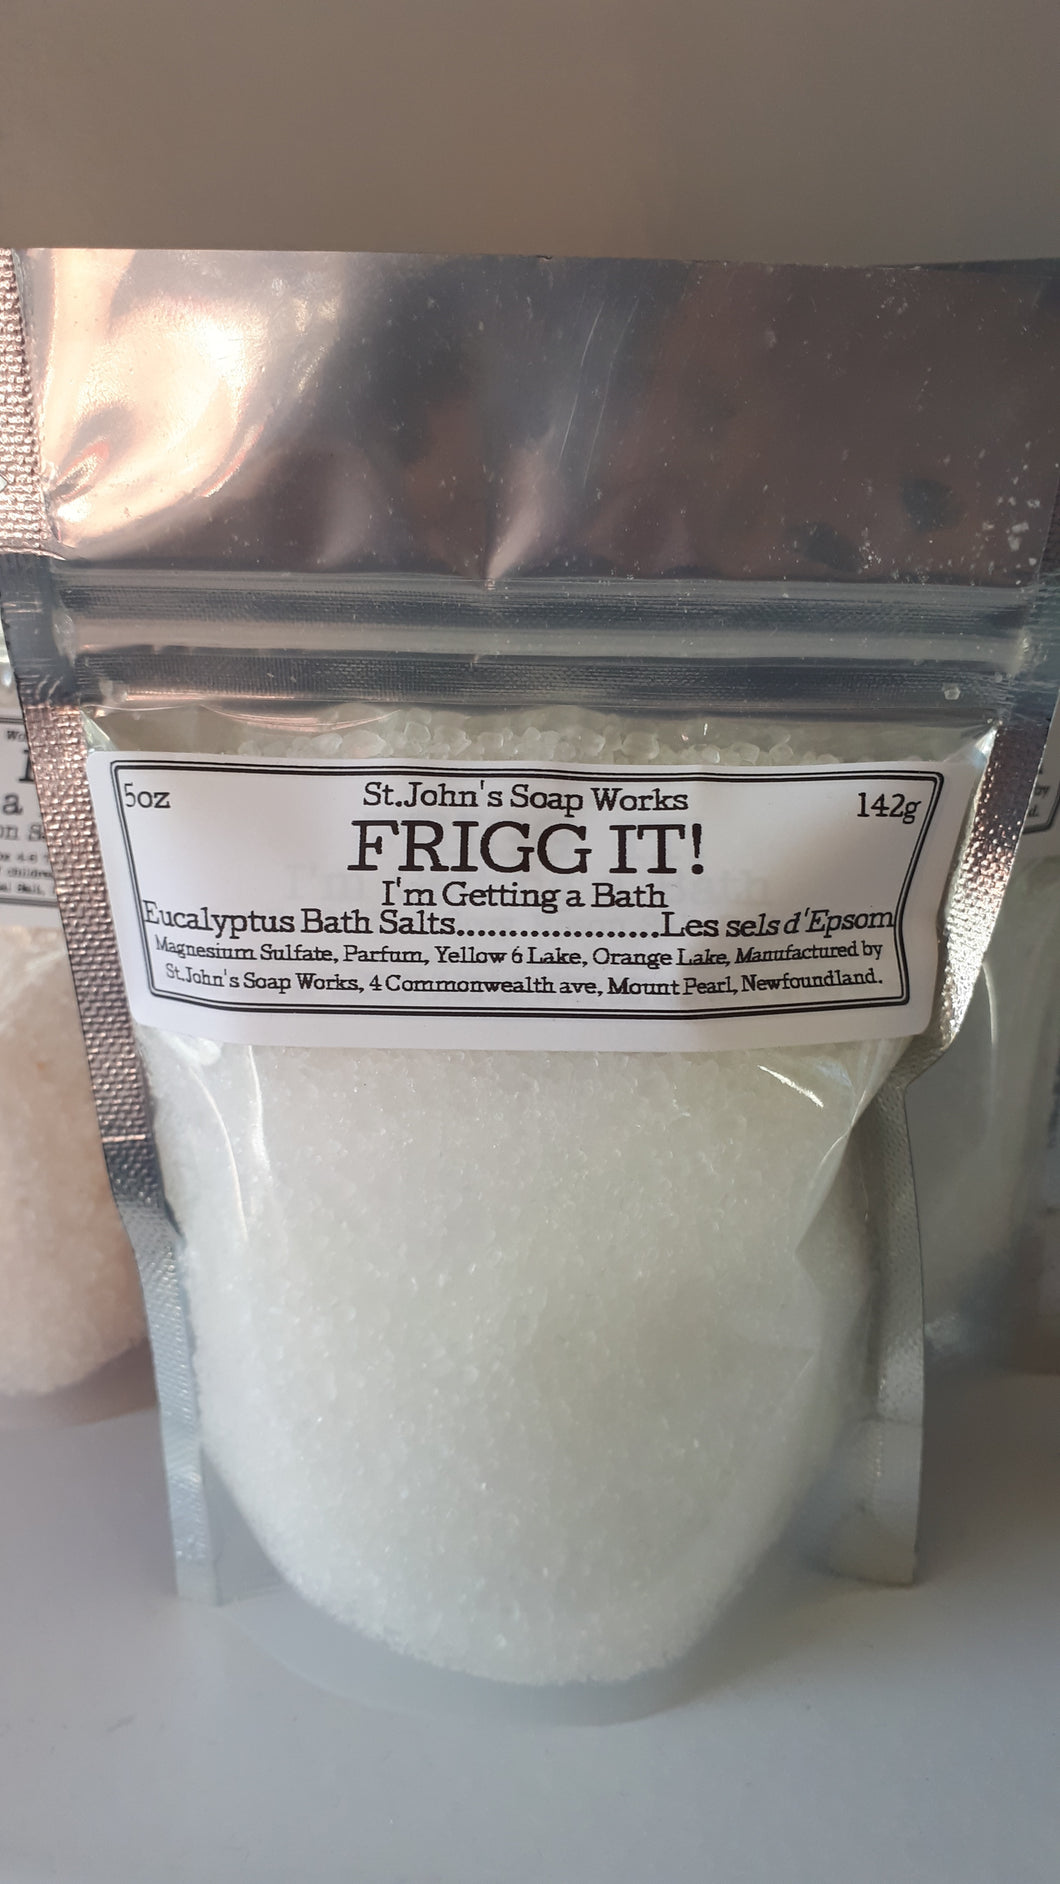 FRIGG IT! Bath Salts